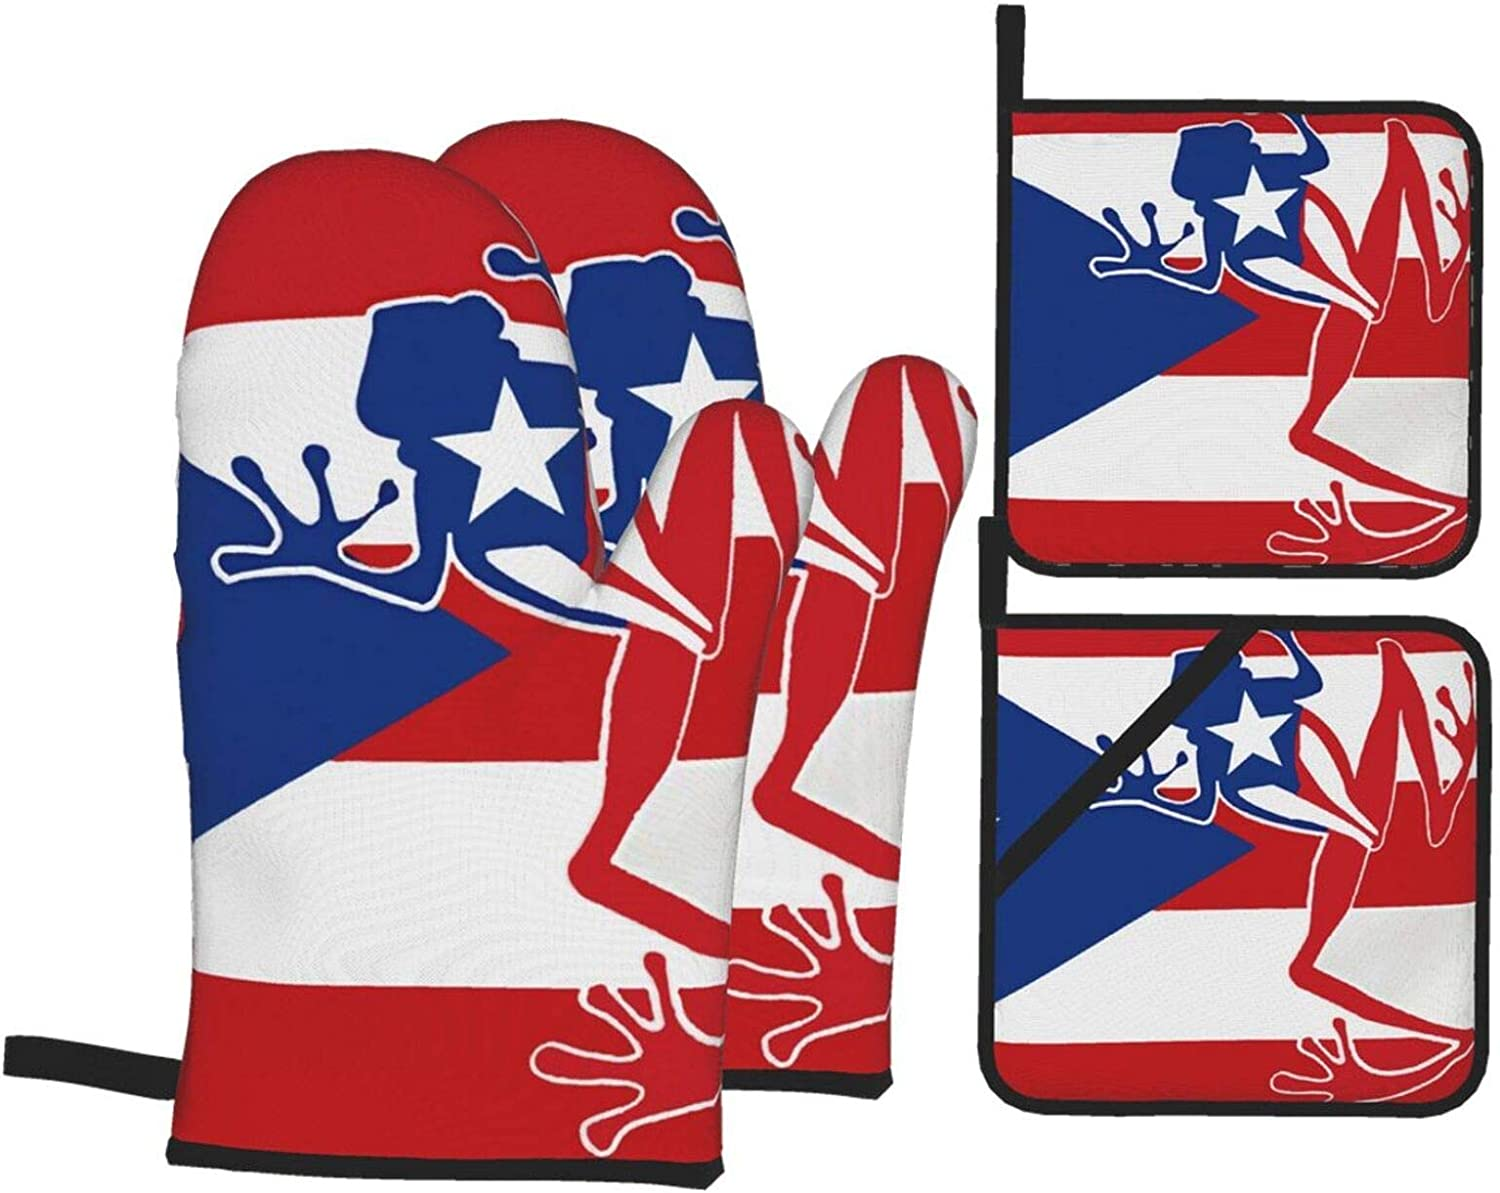 Puerto Rico Flag Frog On Oven Mitts Finally popular brand Gorgeous Res Holder and Pot Heat Sets